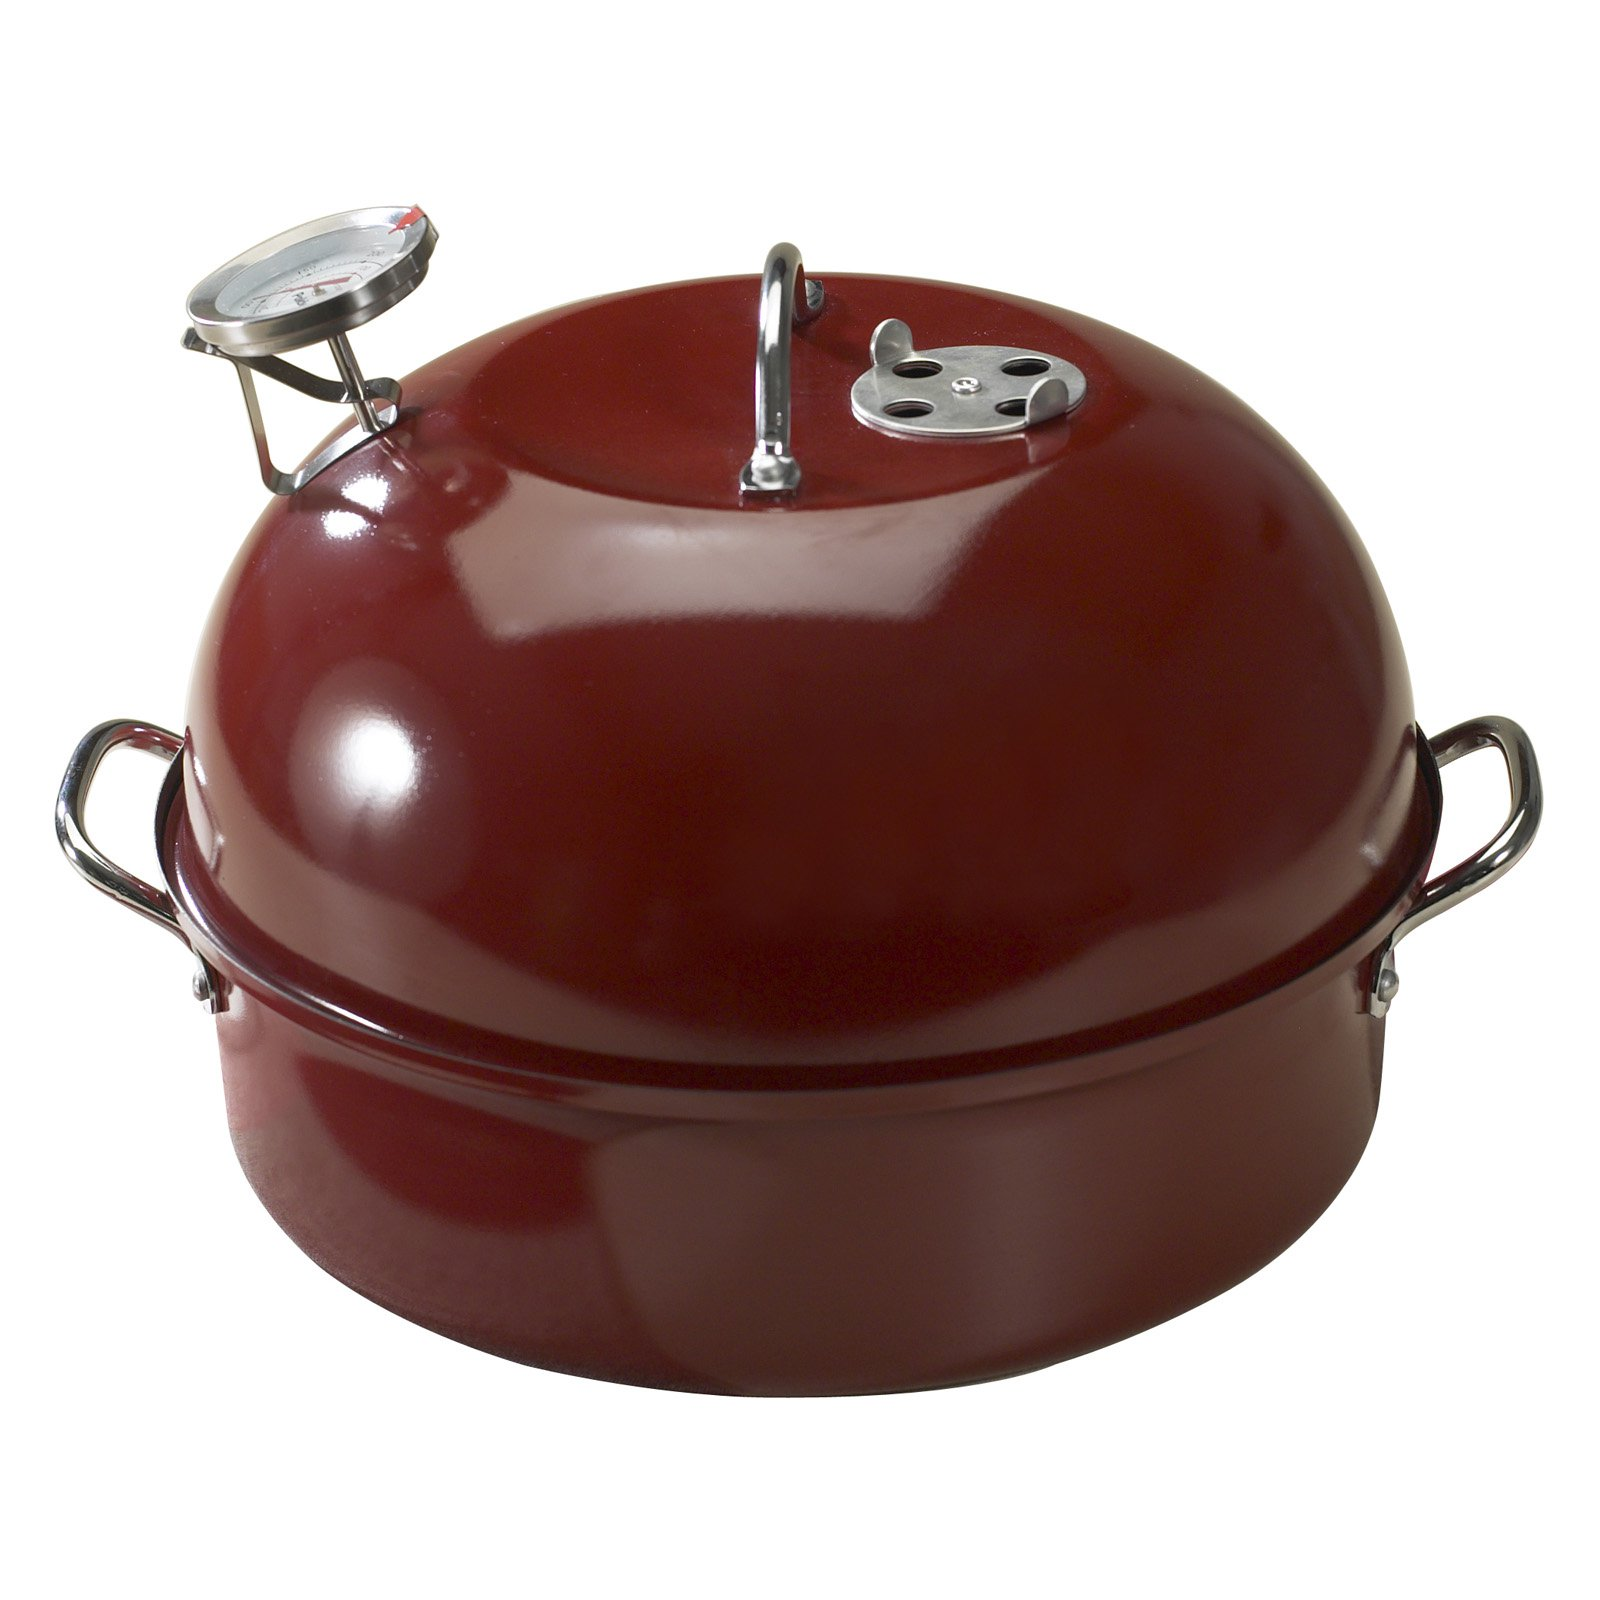 NordicWare Kettle Smoker, 36550